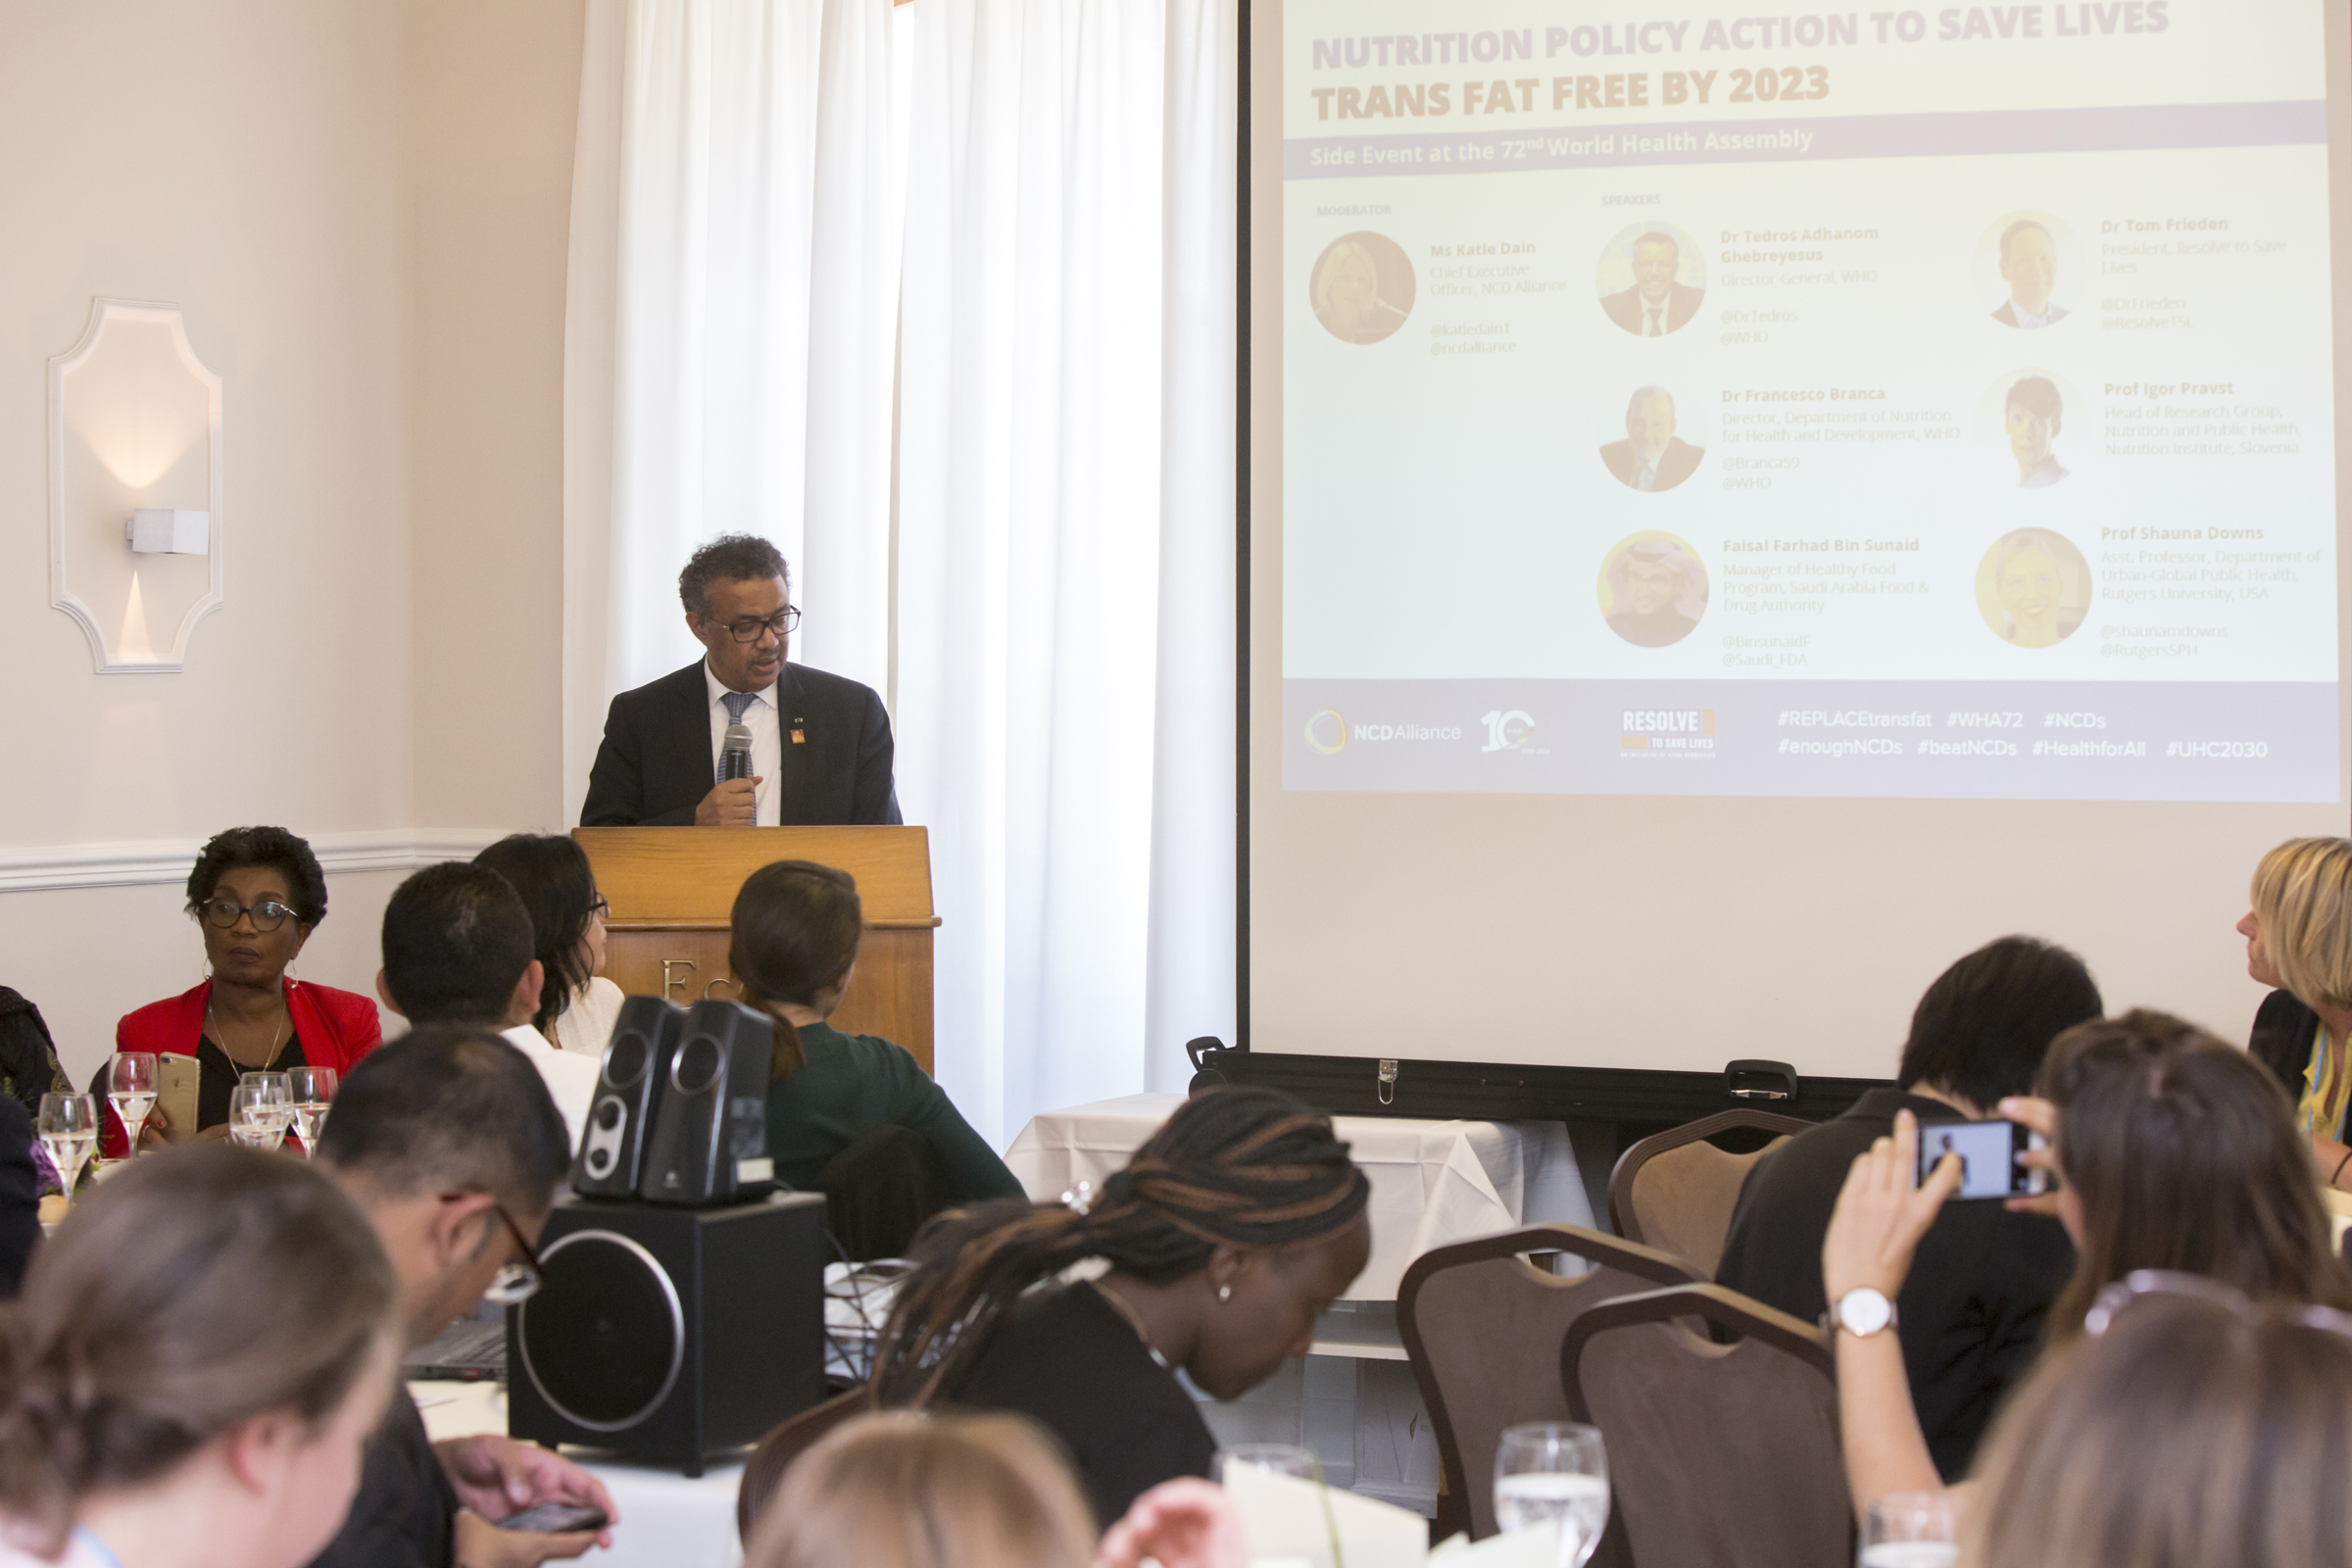 "Dr Tedros Adhanom Ghebreyesus, WHO Director General, speaking at the event ""Nutrition Policy Action to Save Lives - Trans fat free by 2023"""